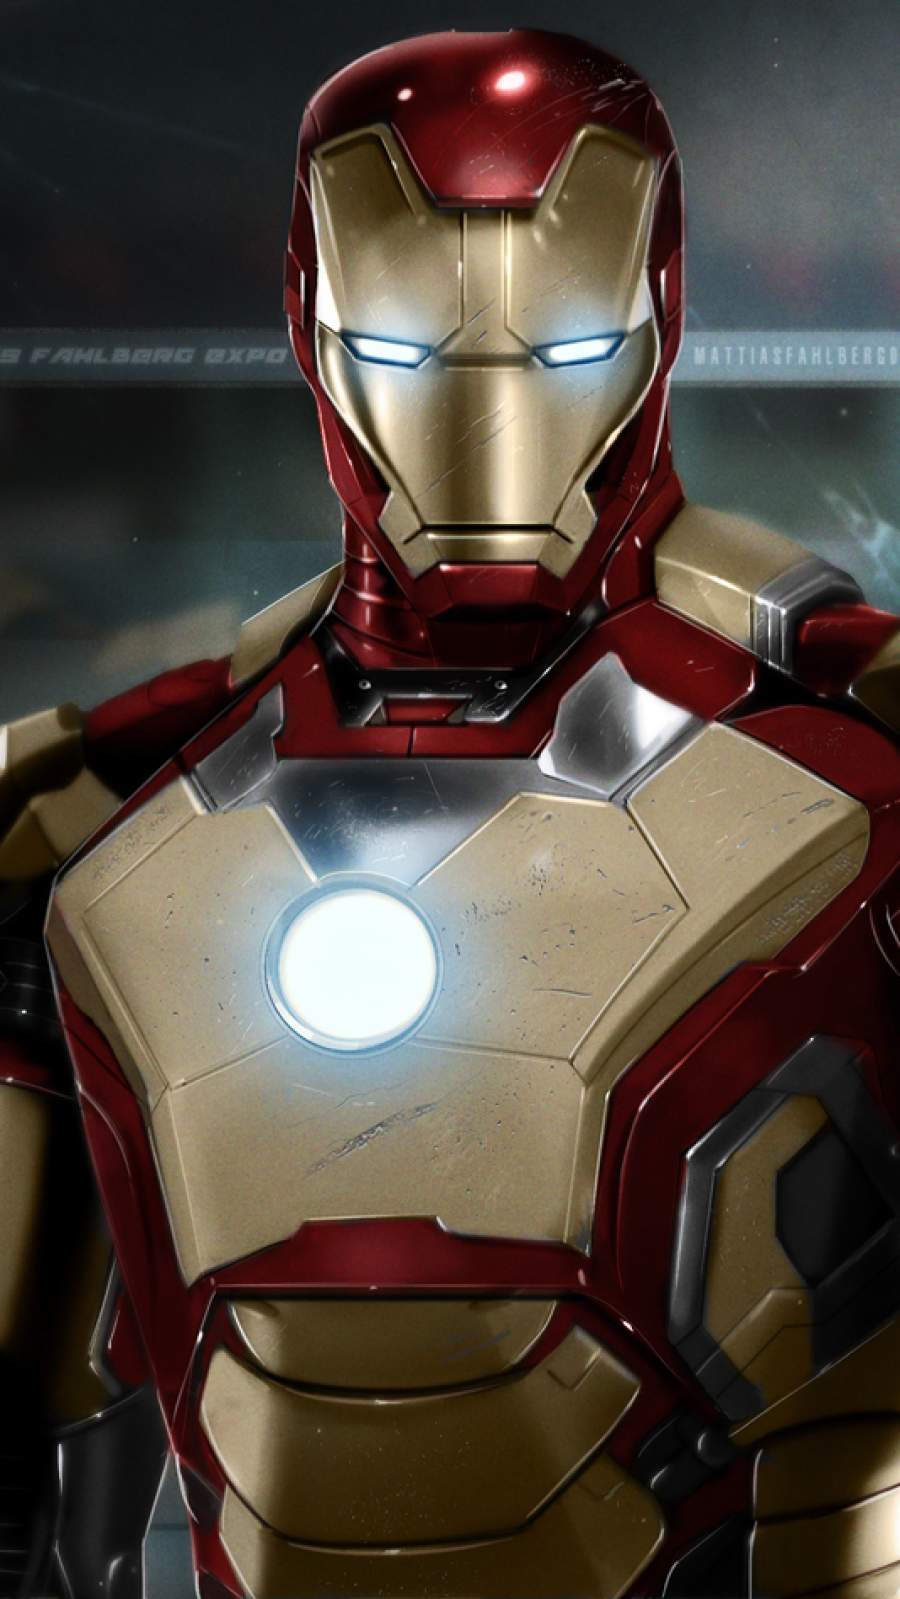 The Iron Man Mark 42 iPhone Wallpaper